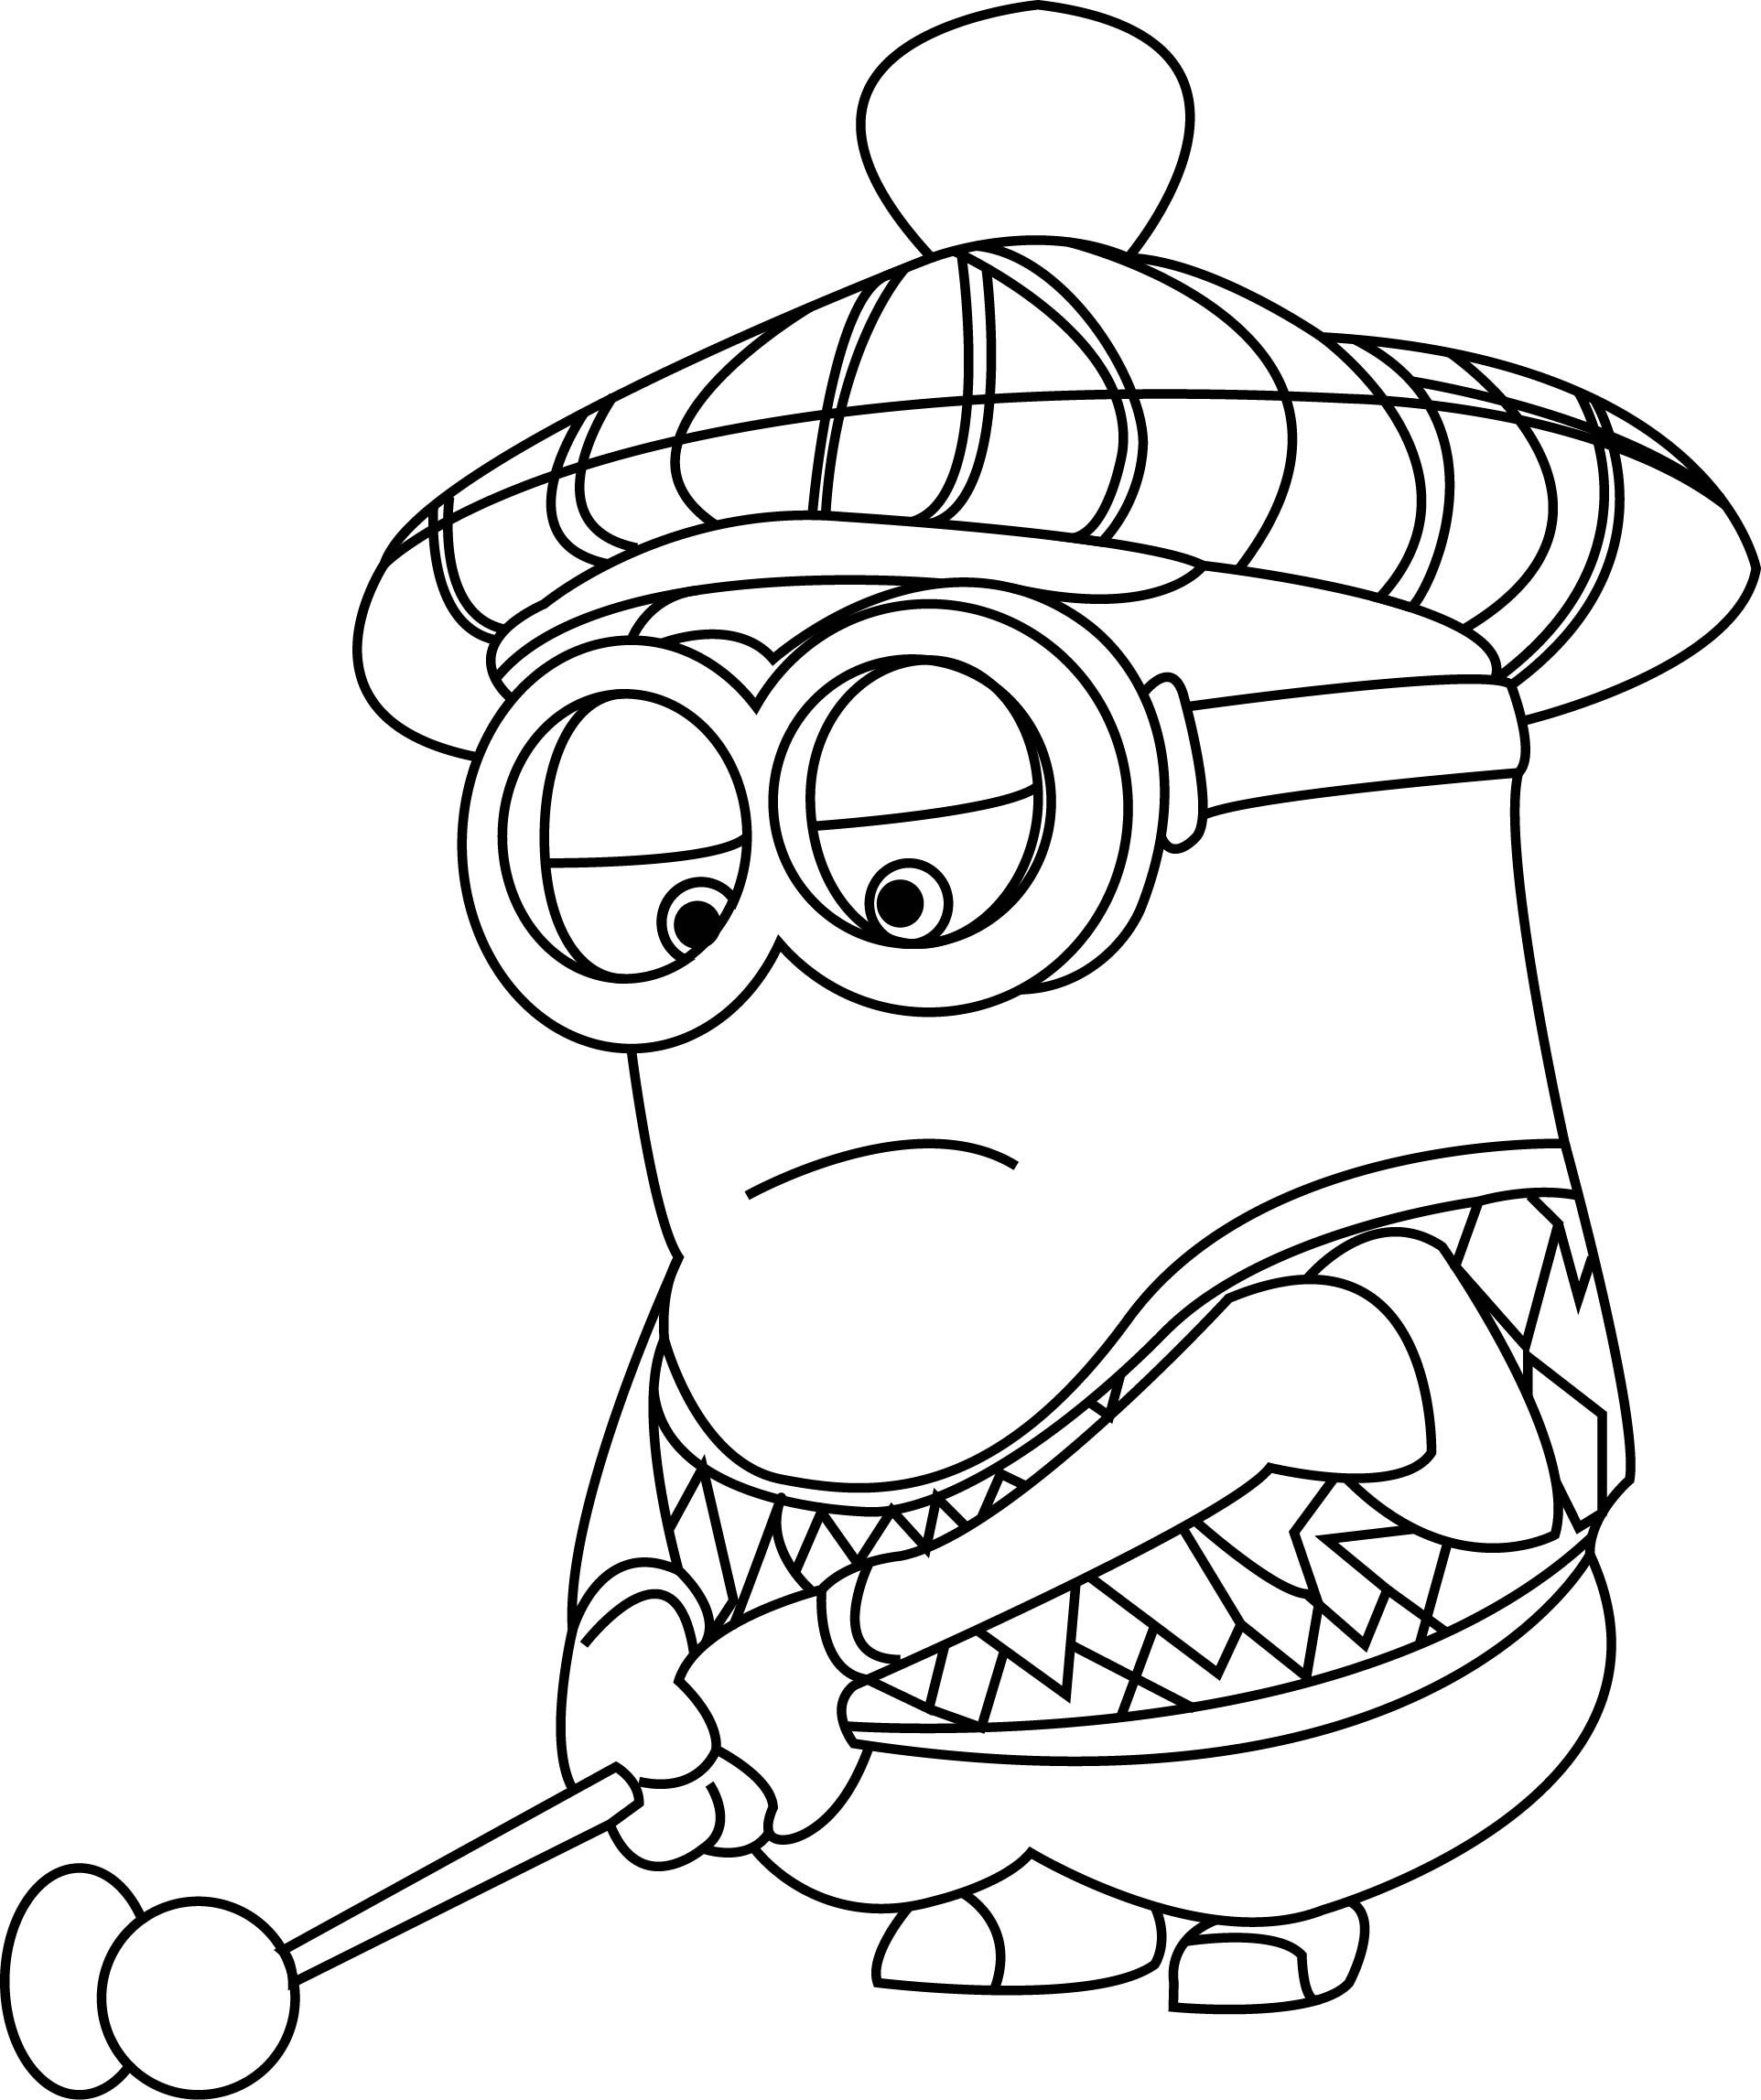 free despicable me coloring pages printable despicable me coloring pages for kids cool2bkids me despicable coloring free pages